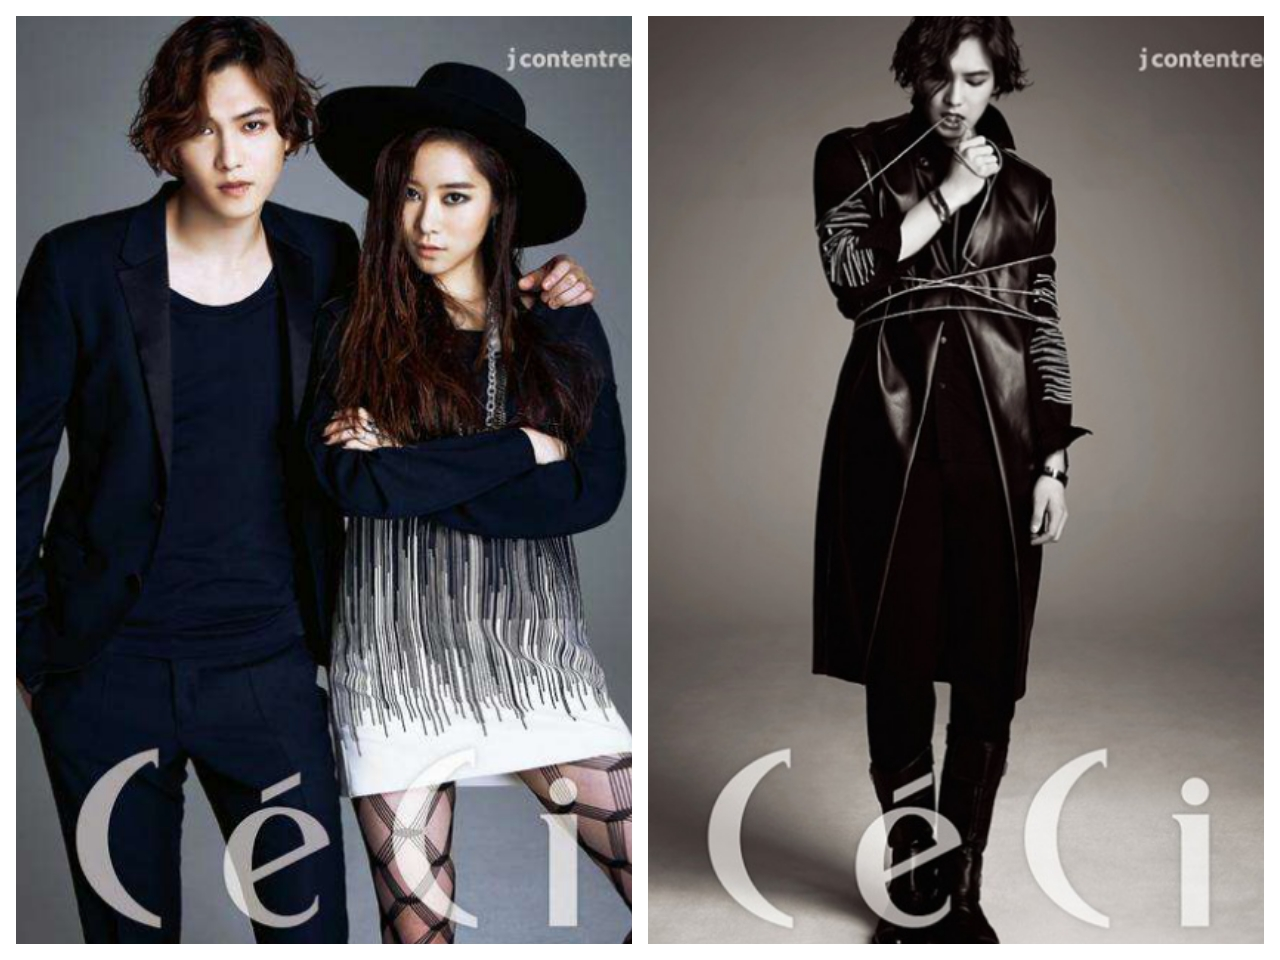 Lee Jong Hyun - Melody Day Cha Hee -  Ceci Sept